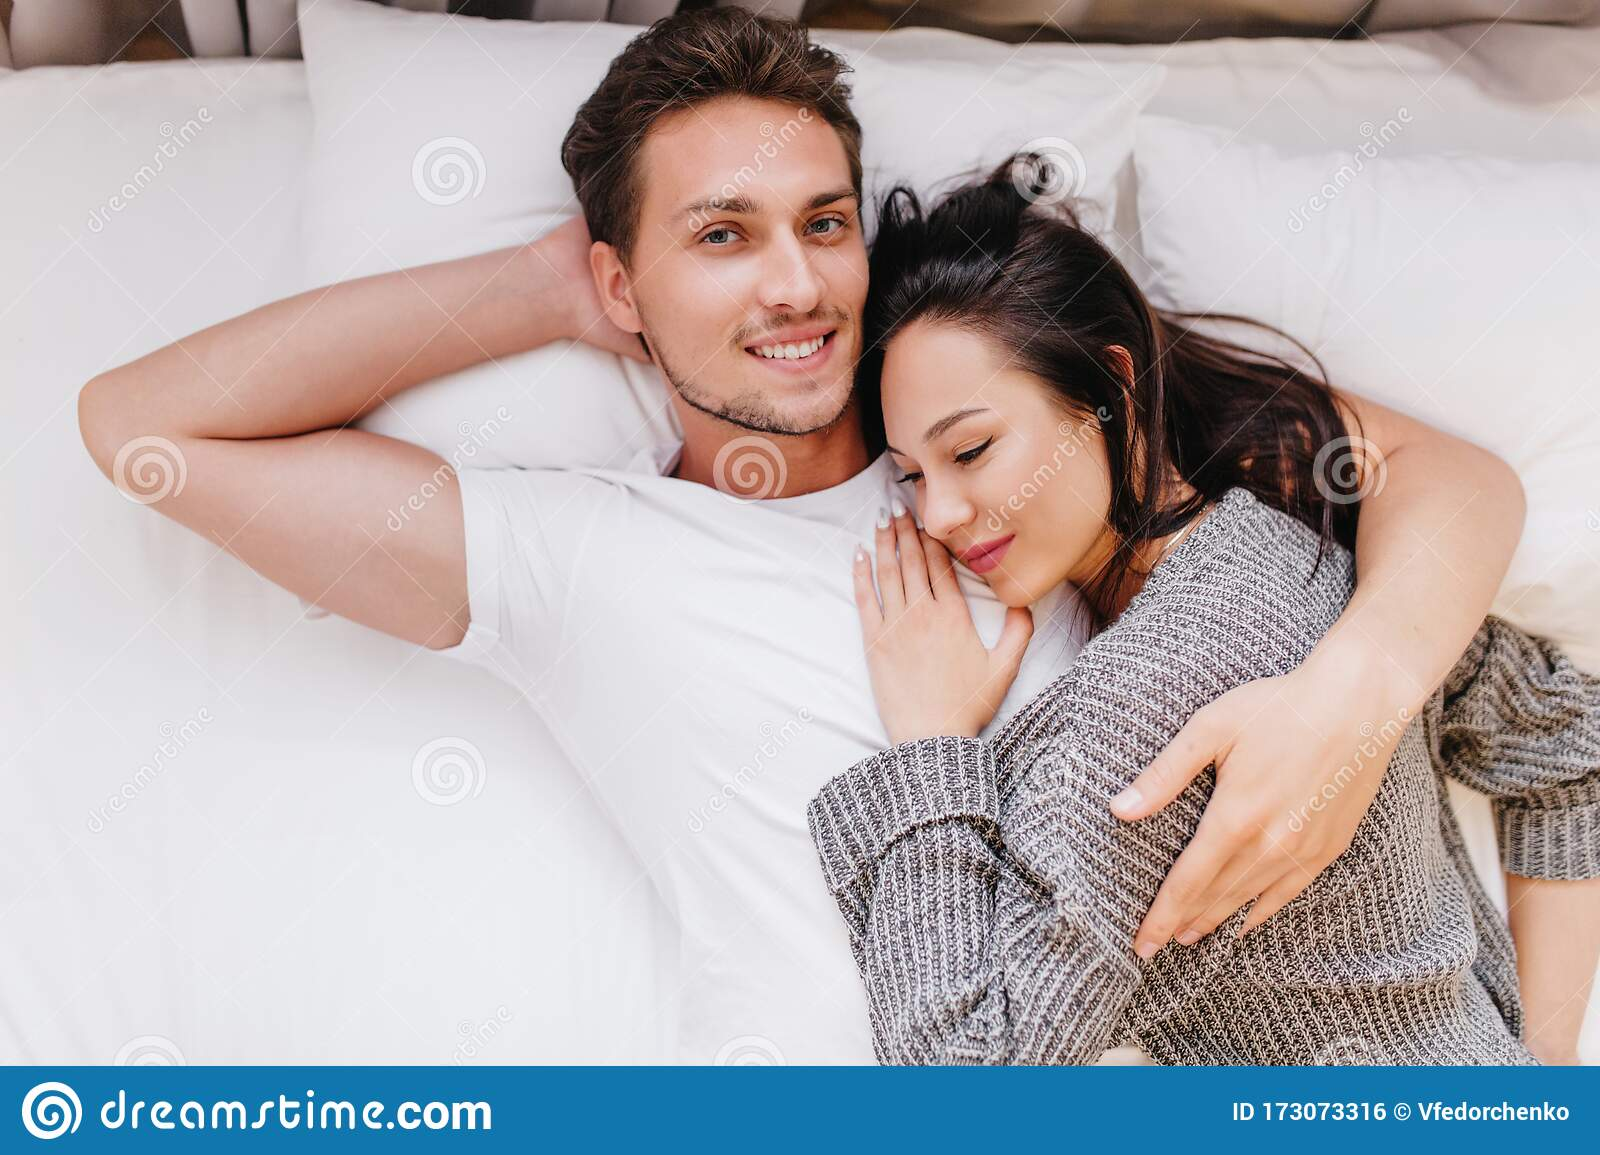 Smiling Man Posing In Bed With Wife Sleeping On His Chest Indoor Overhead Photo Of Chilling Couple Spending Weekend Stock Photo Image Of Joyful Boyfriend 173073316